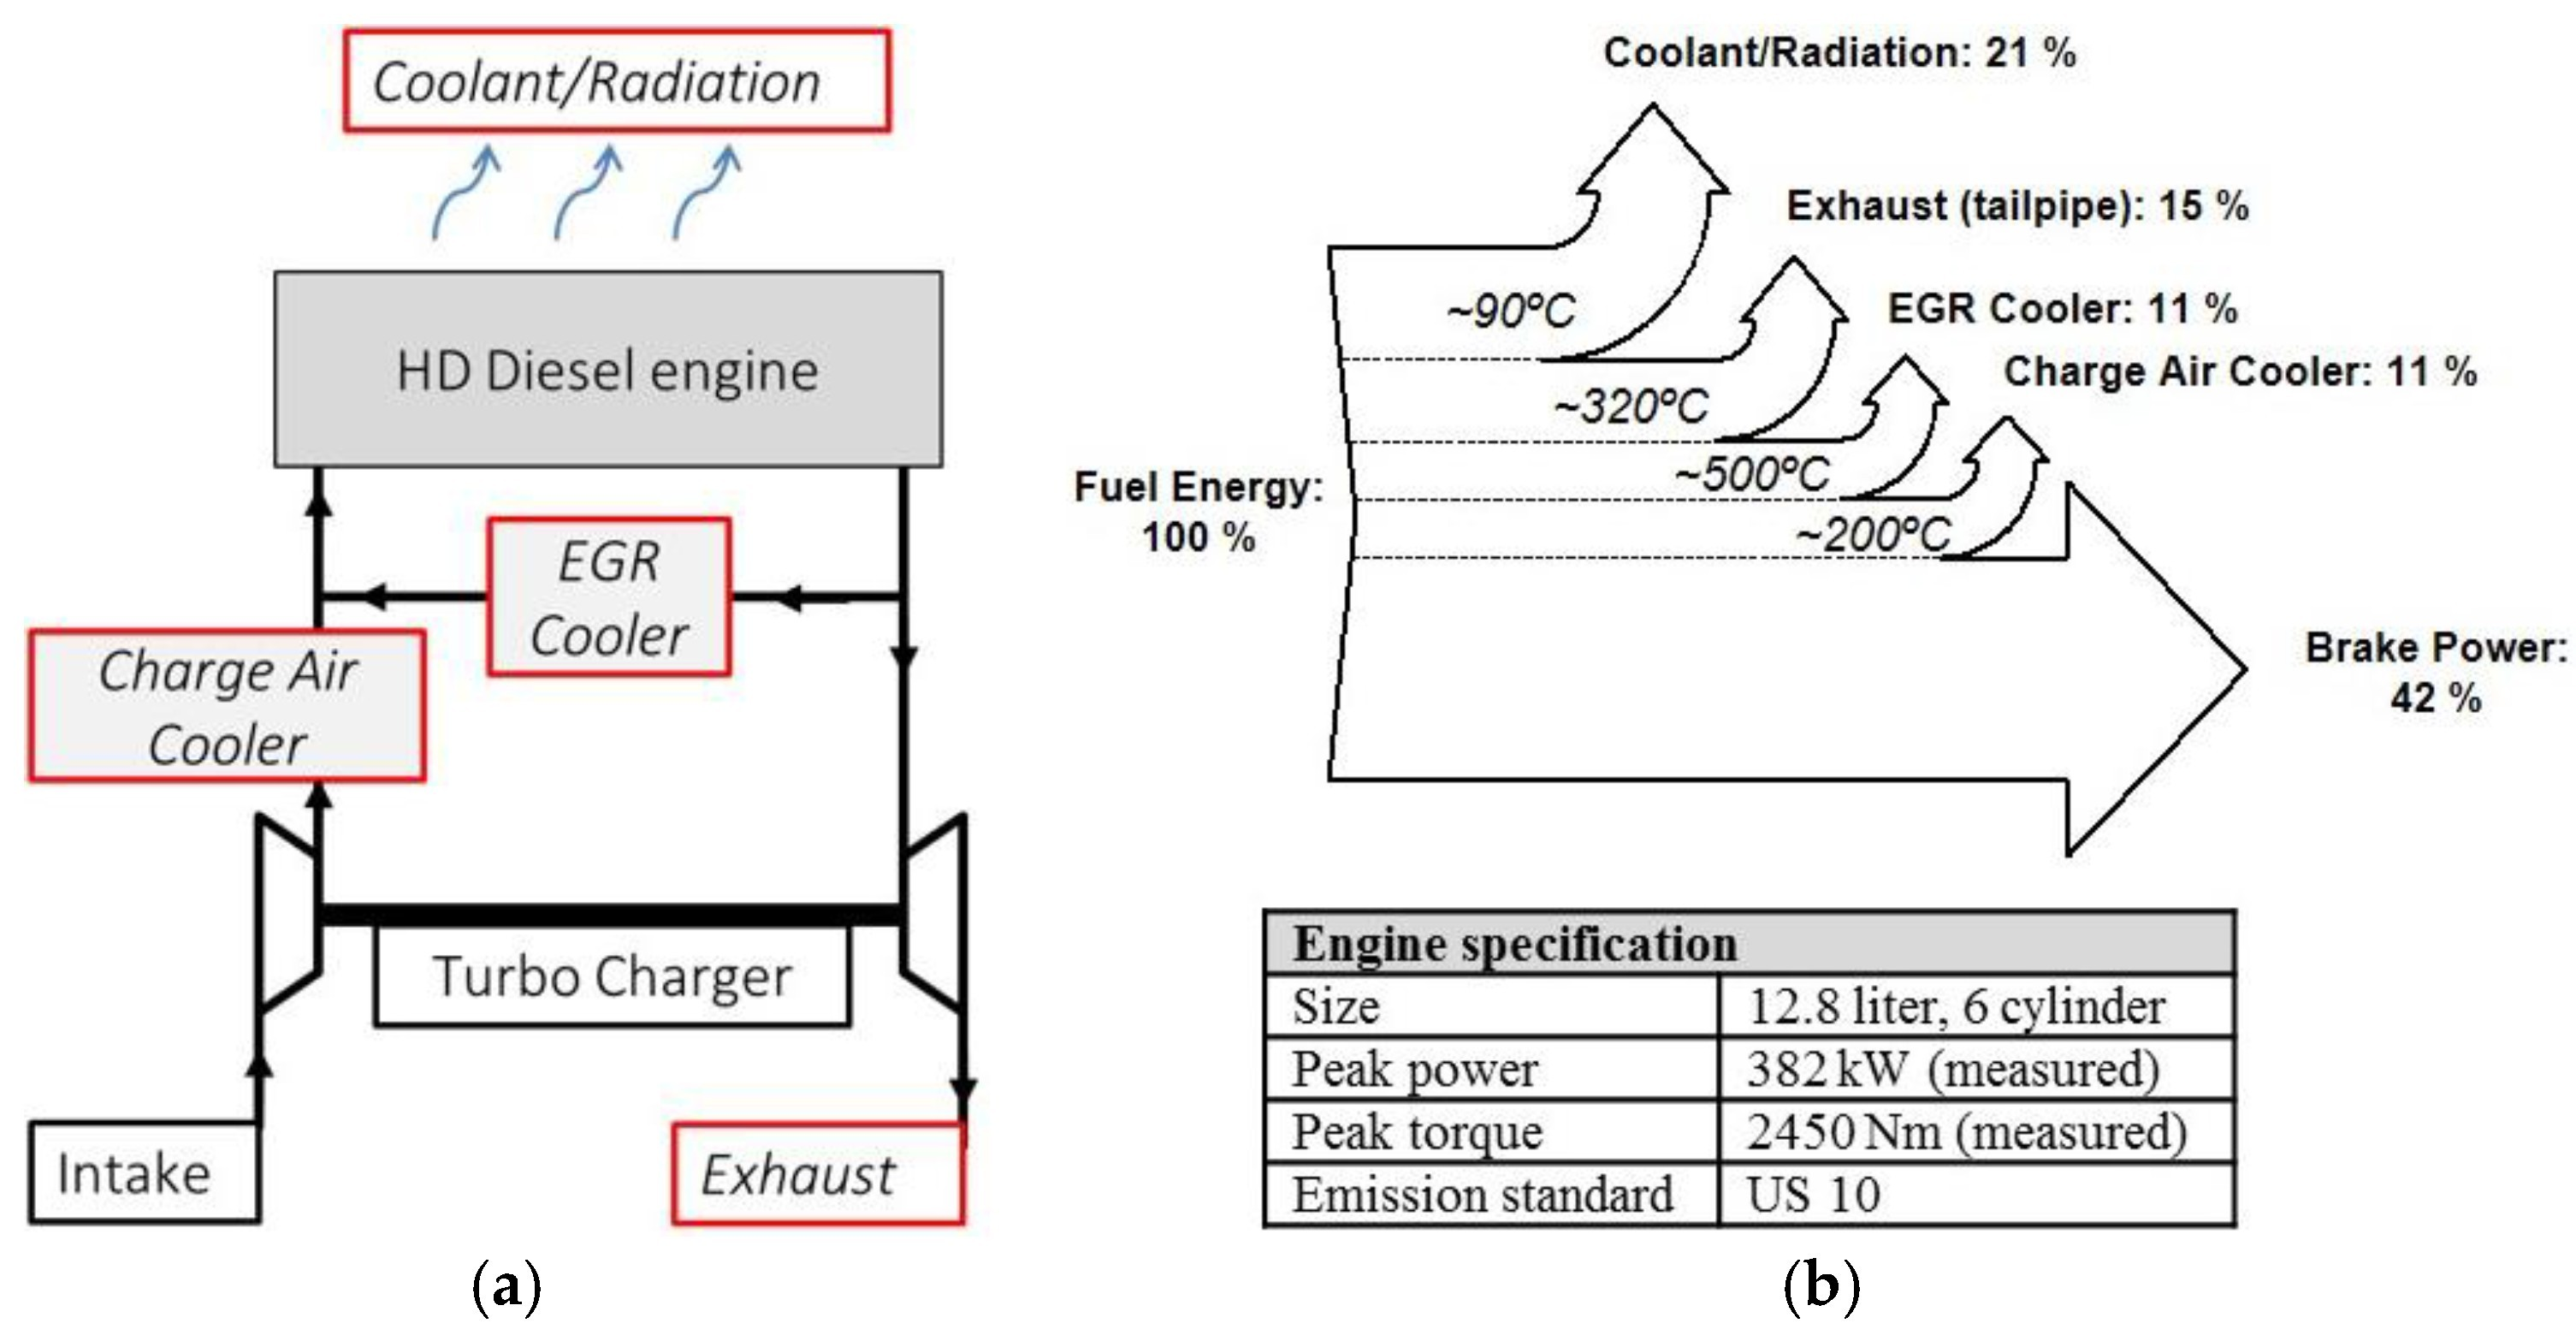 Cooling System Diagram Diagram Engine Energies Free Full Text – My Wiring Diagram Of Cooling System Diagram